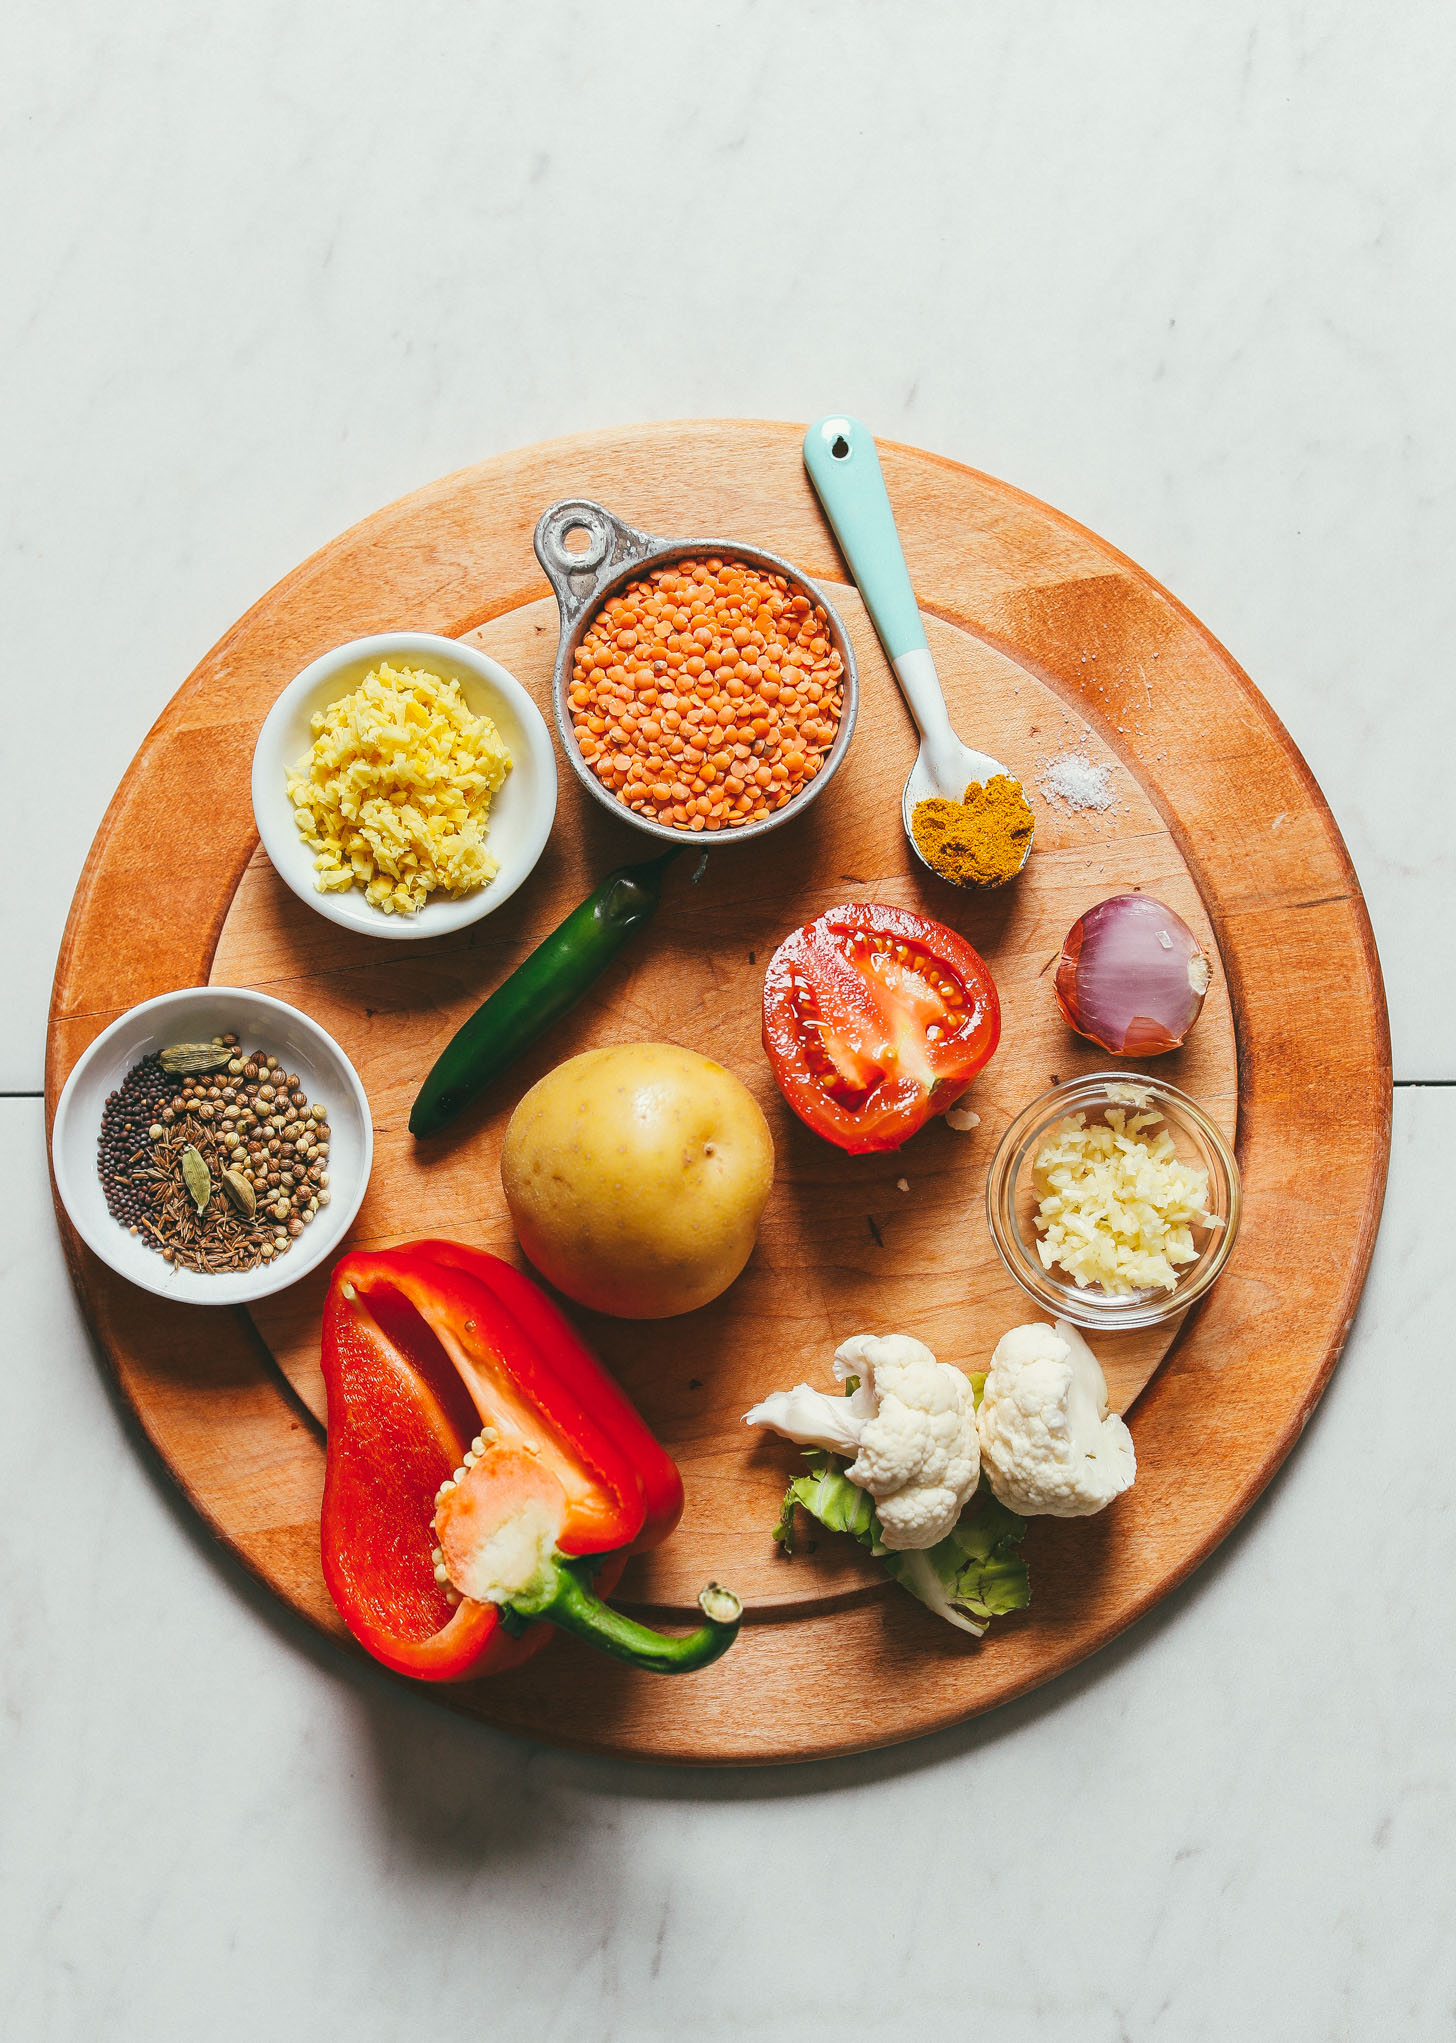 Ingredients for red lentil curry with potato, red bell pepper, and cauliflower on a cutting board